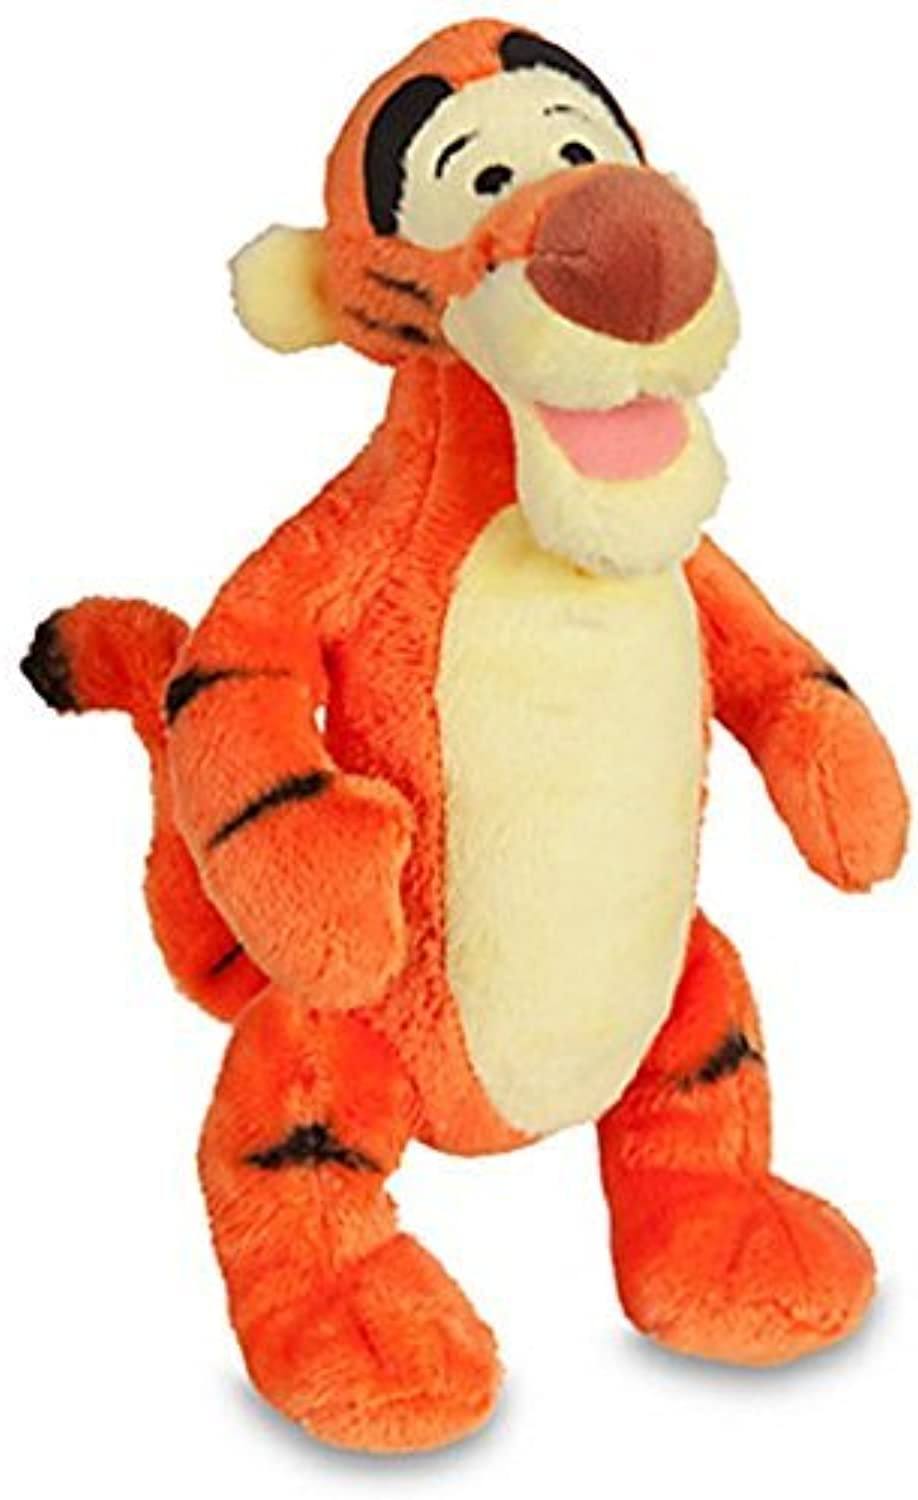 productos creativos Disney Tigger Plush 10 -Winnie -Winnie -Winnie the Pooh Collection from The Hundrojo Acre Woods by Disney  diseñador en linea